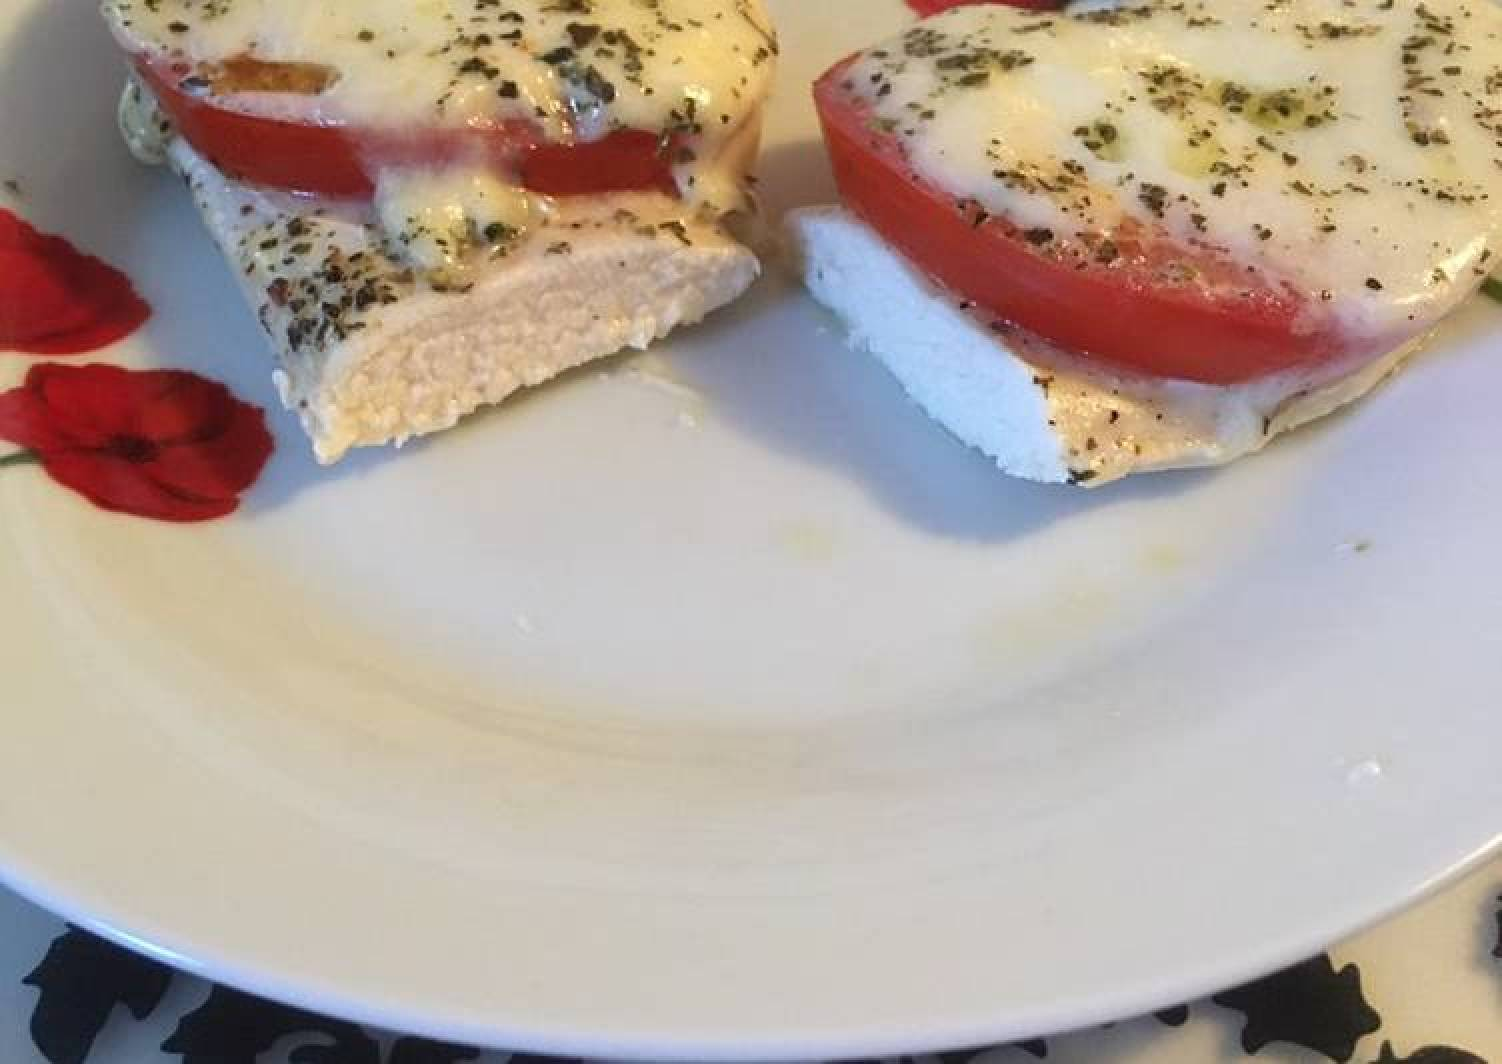 Chicken breasts with mozzarela and tomato (kuracie prsia s mozzarellou a paradajkou)